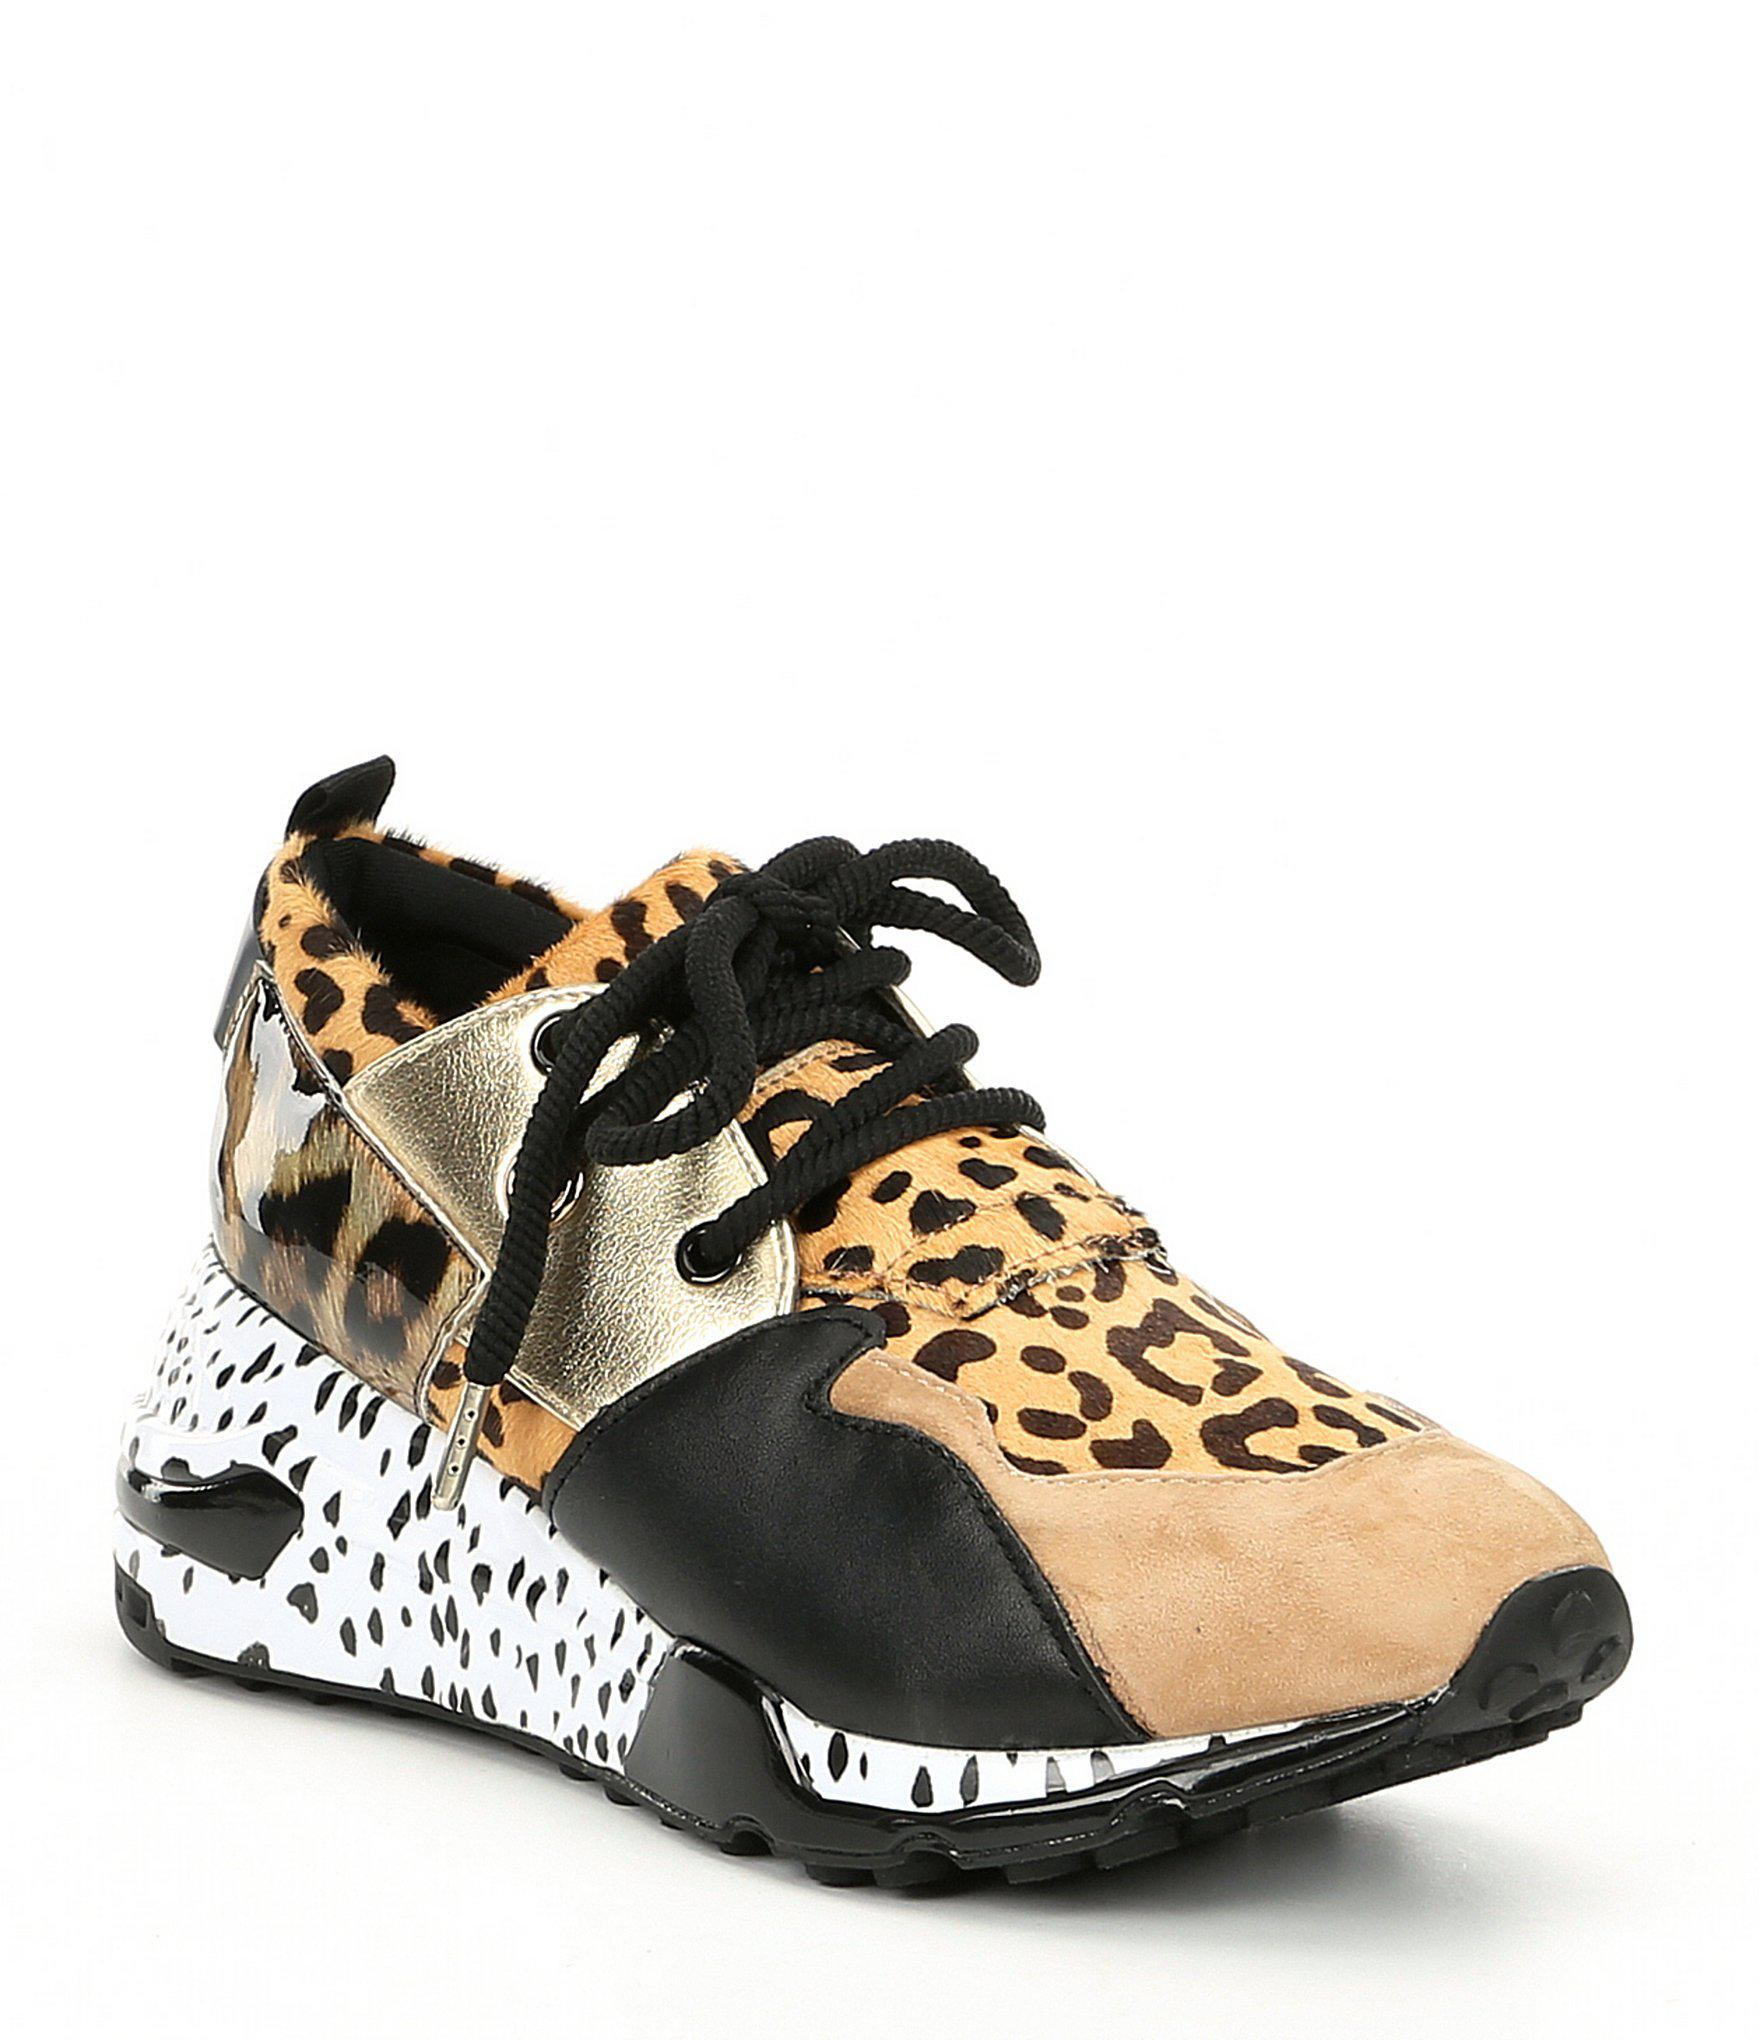 c129962b539 Steve Madden Multicolor Cliff Leather And Suede Animal Print Sneakers